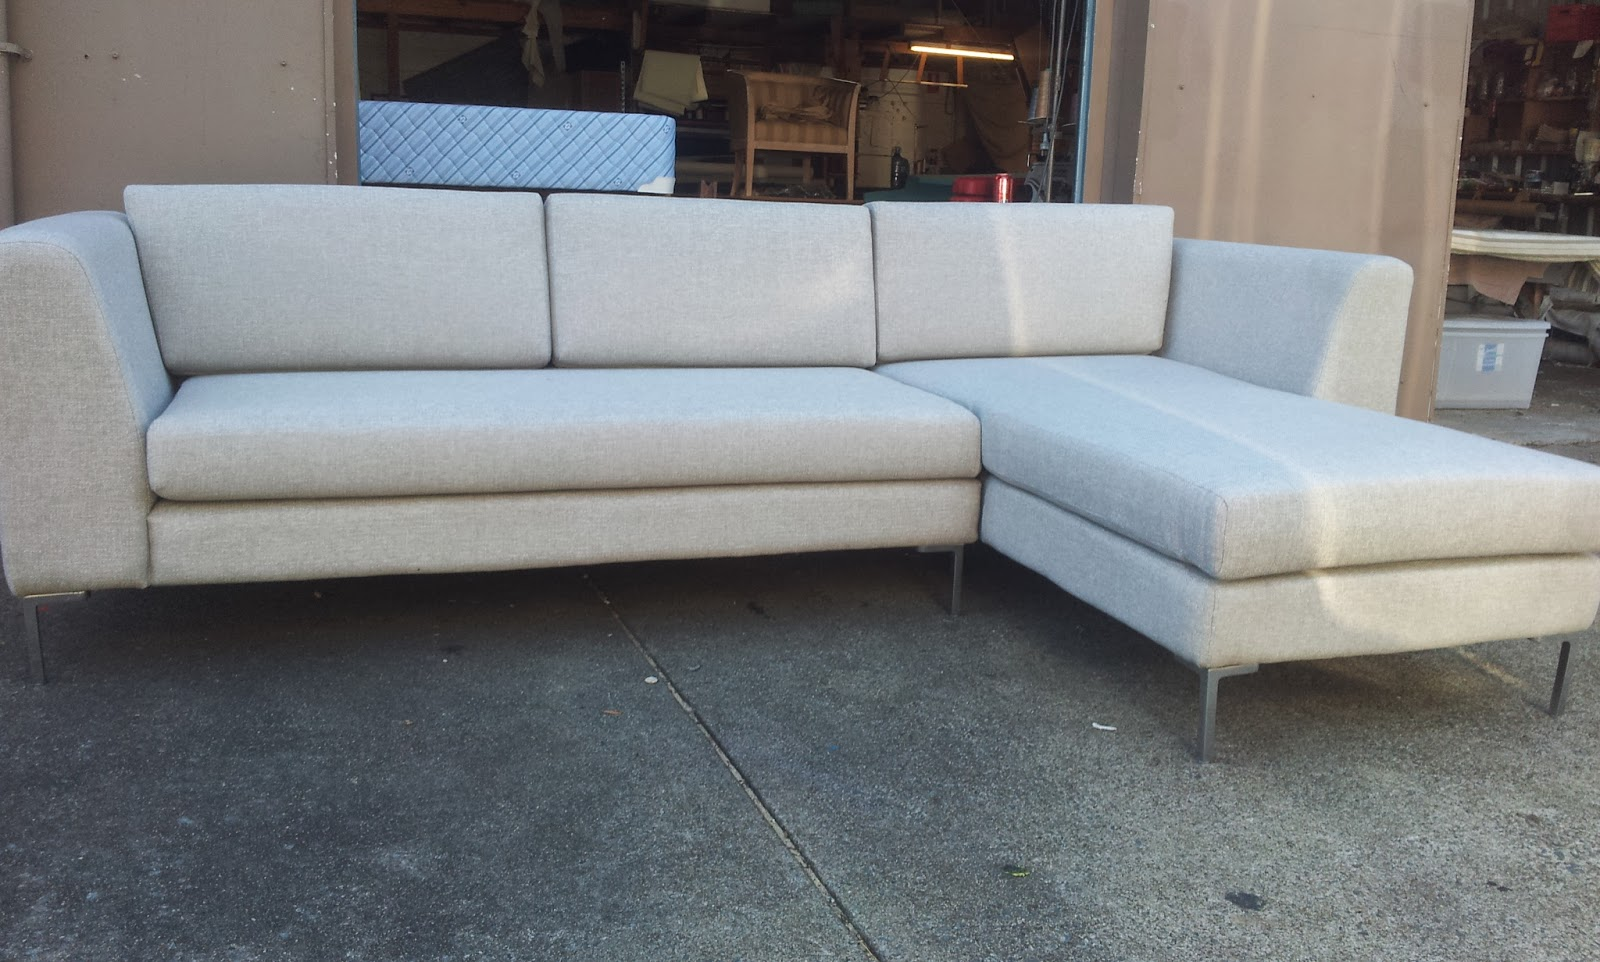 Designer Sofas Made To Order By Upholsterers On The Gold Coast